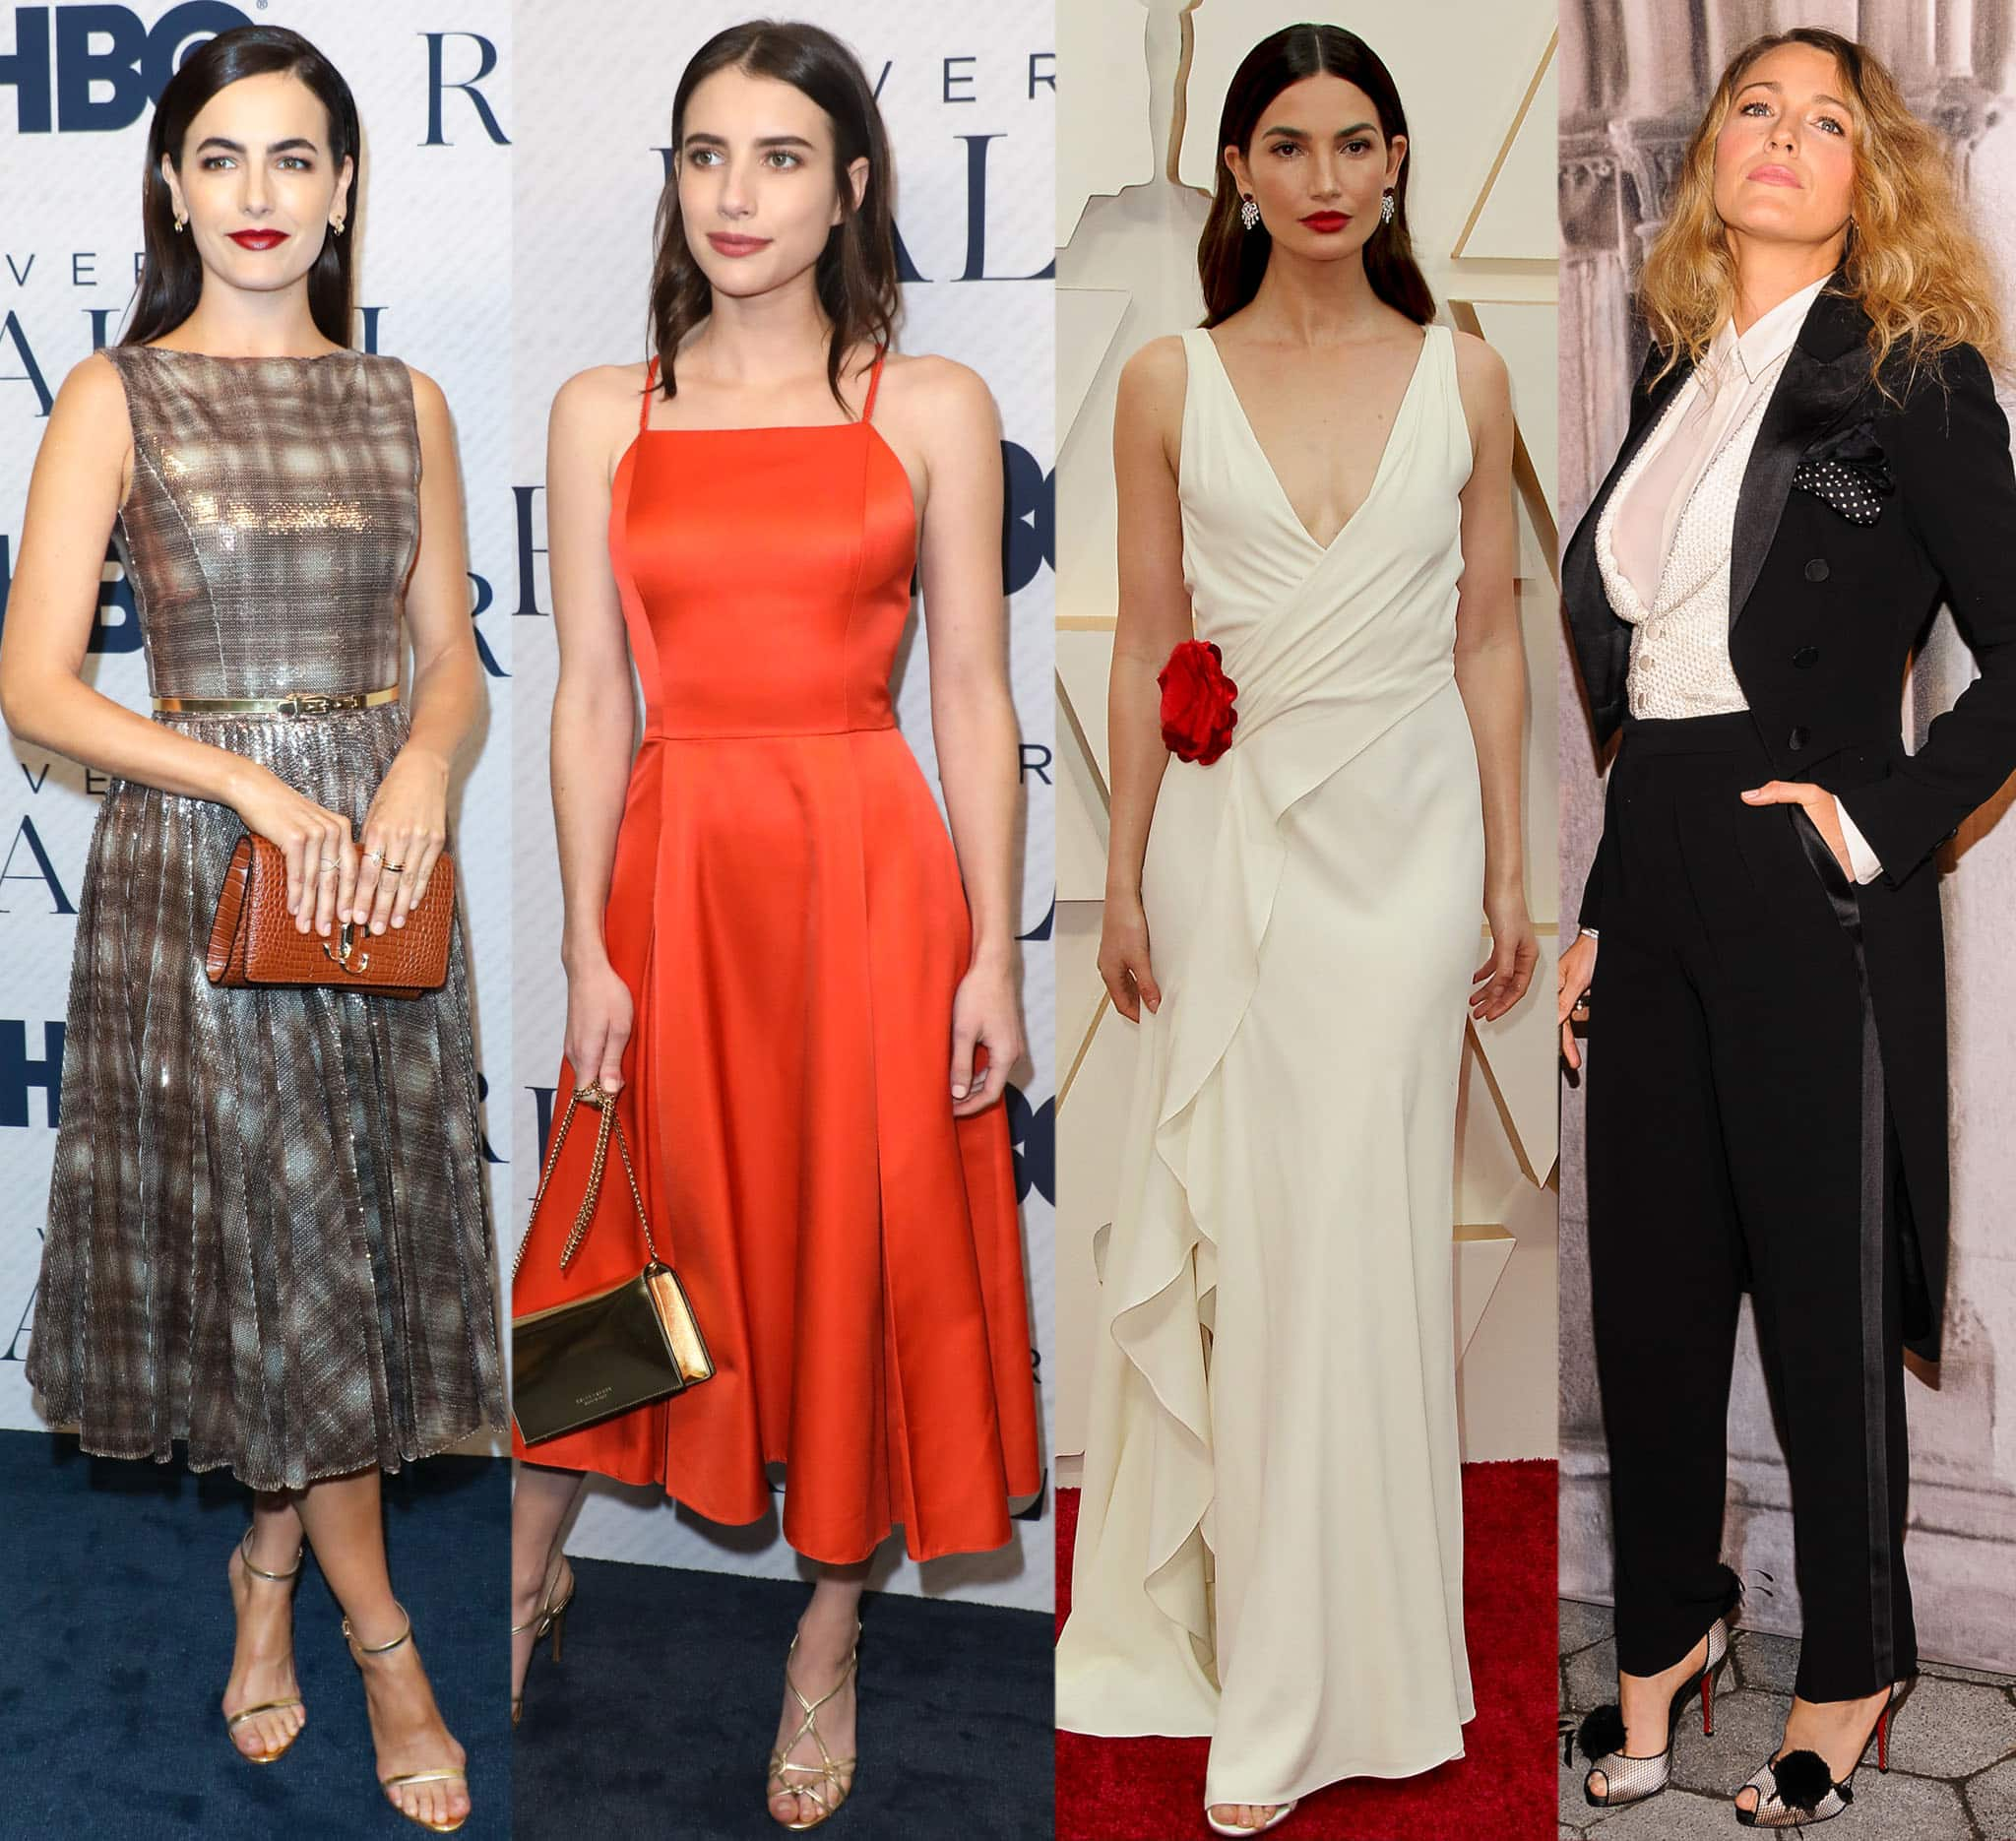 Camilla Belle, Emma Roberts, Lily Aldridge and Blake Lively are just among the many celebrities that support Ralph Lauren